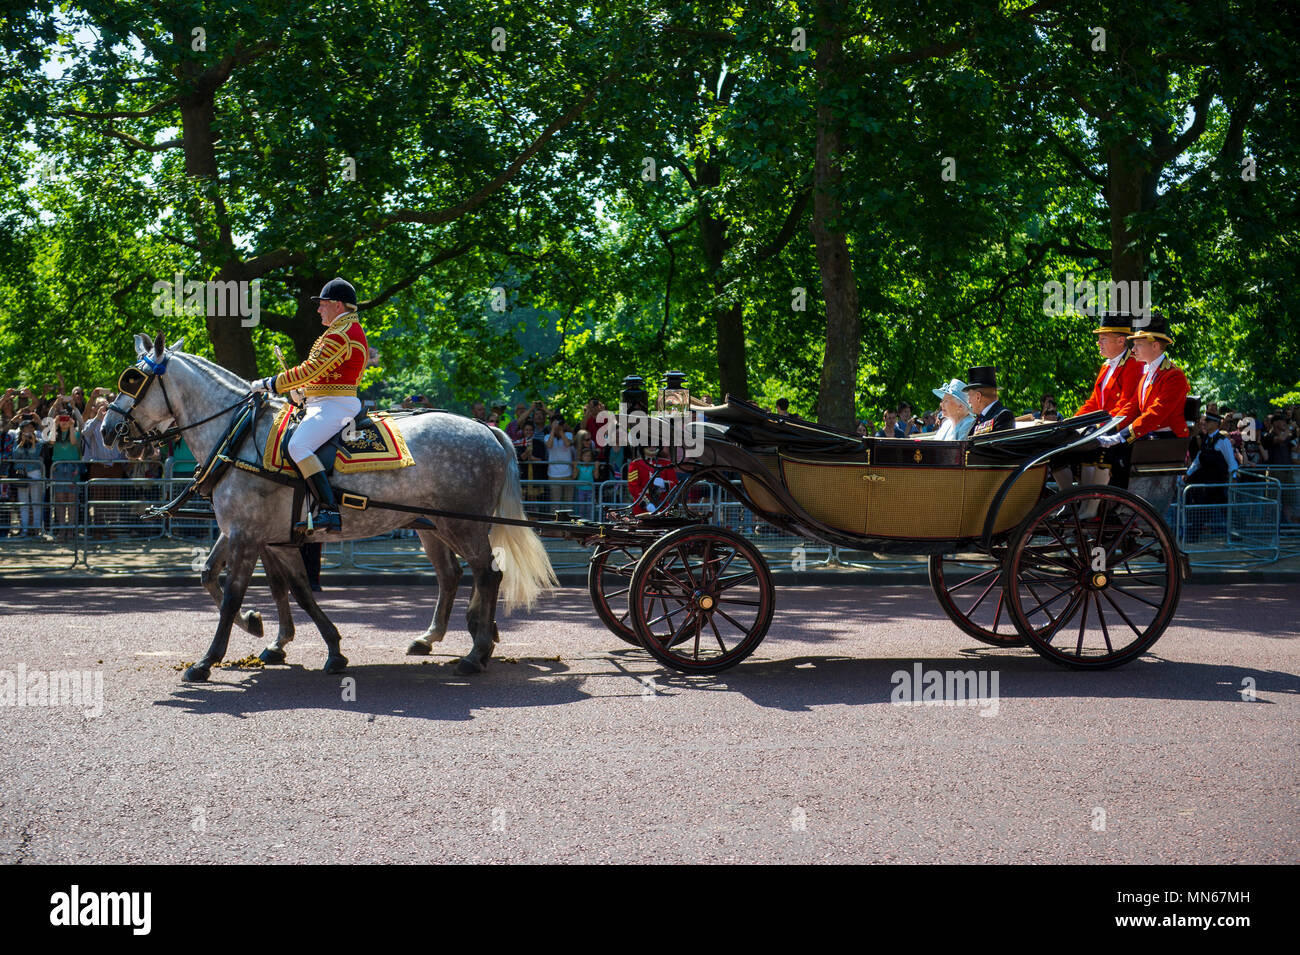 LONDON, UK - JUNE 17, 2017: Her Majesty Queen Elizabeth II and Duke of Edinburgh travel by horse drawn carriage during the Trooping the Colour parade. - Stock Image